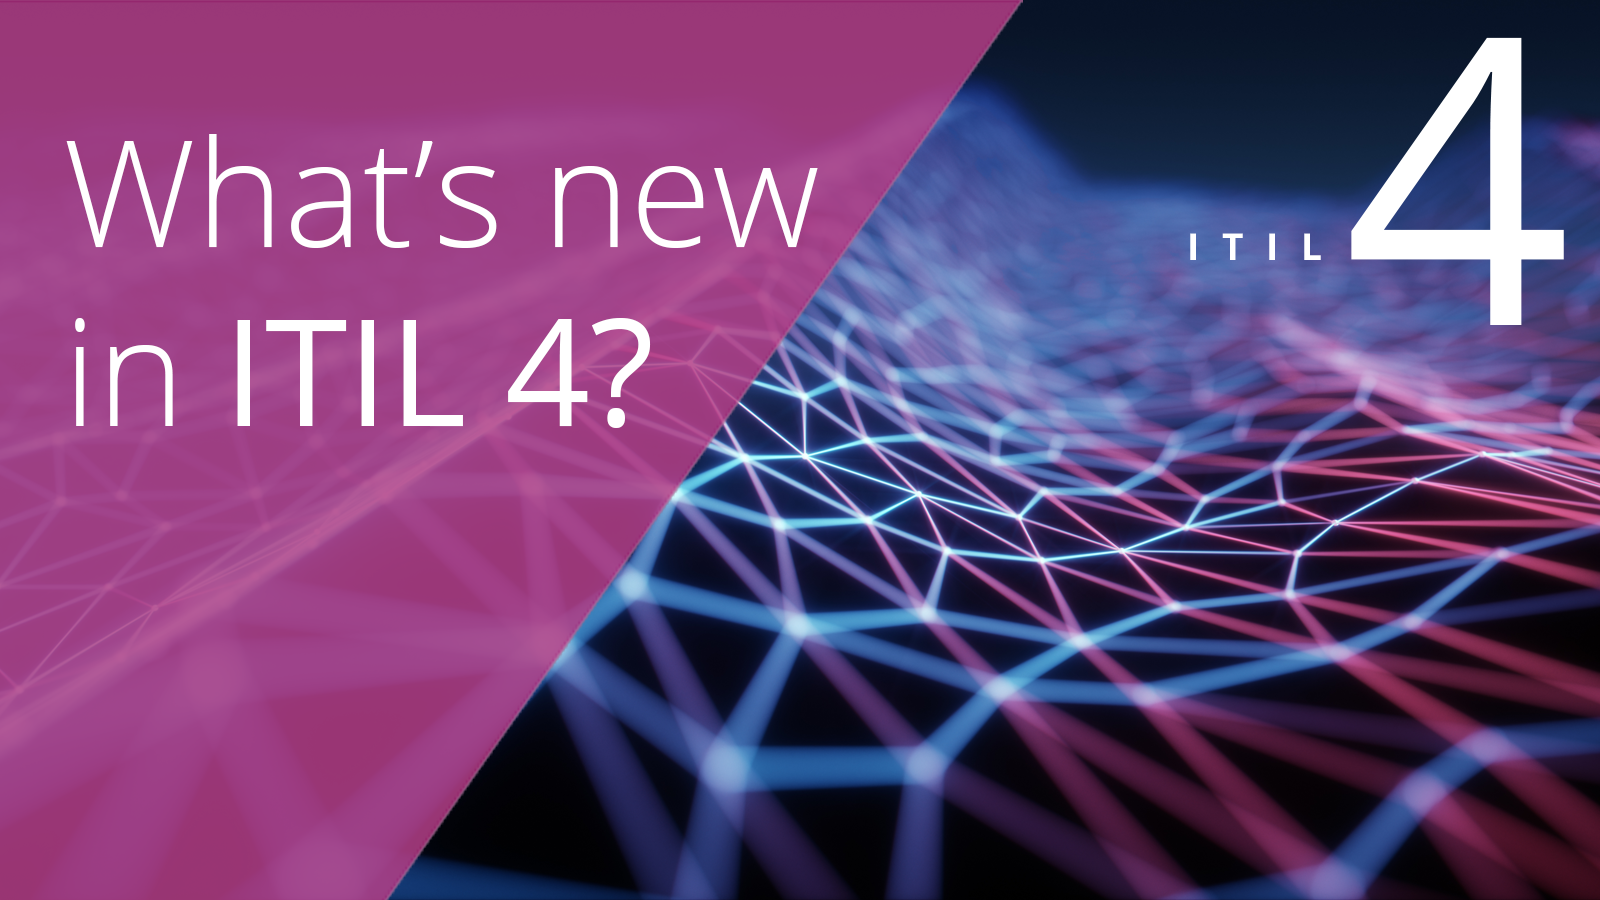 What's new in ITIL 4?